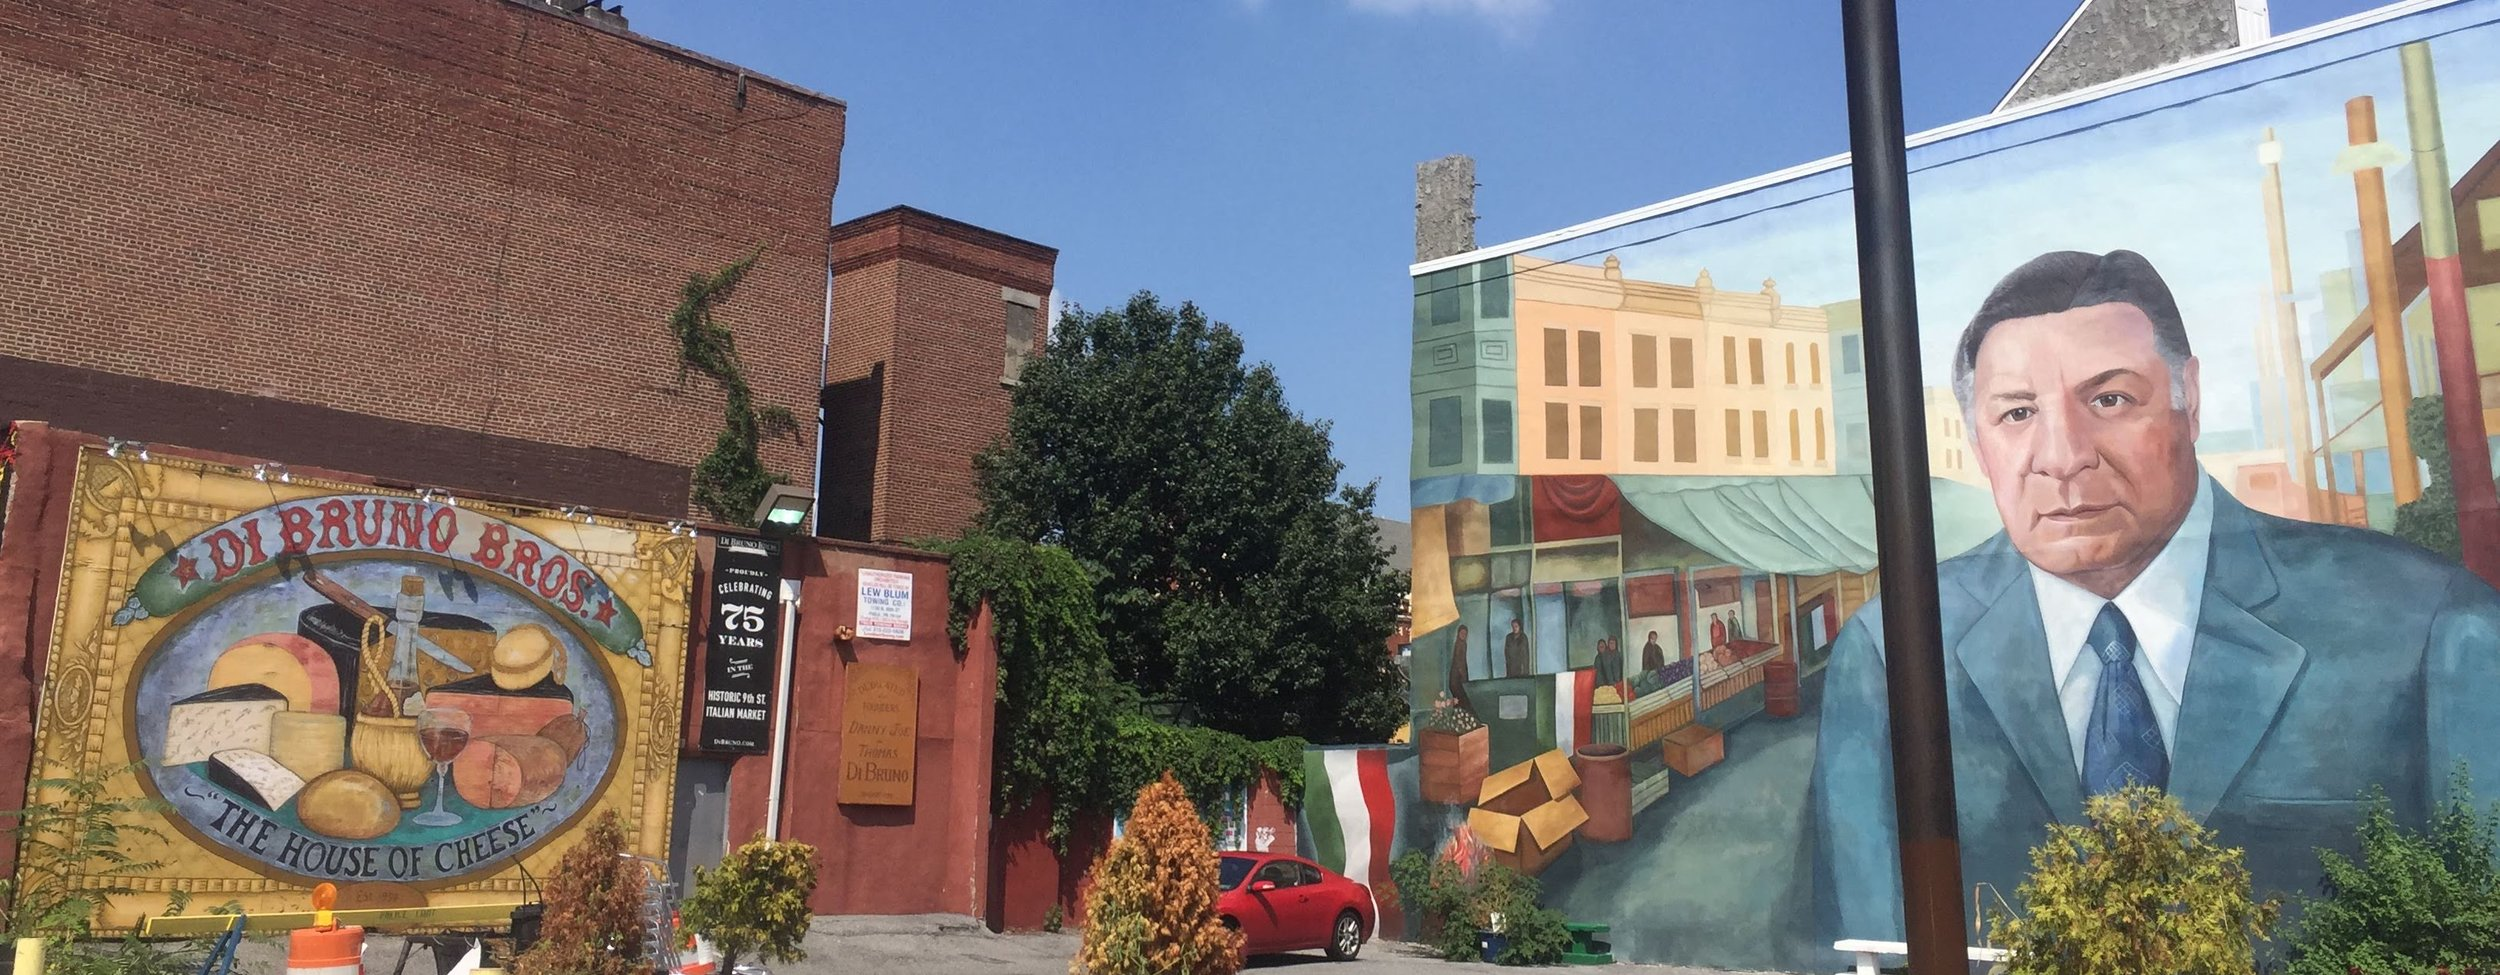 Exploring Philly's Italian Market with Zeeno - Her Bags Were Packed